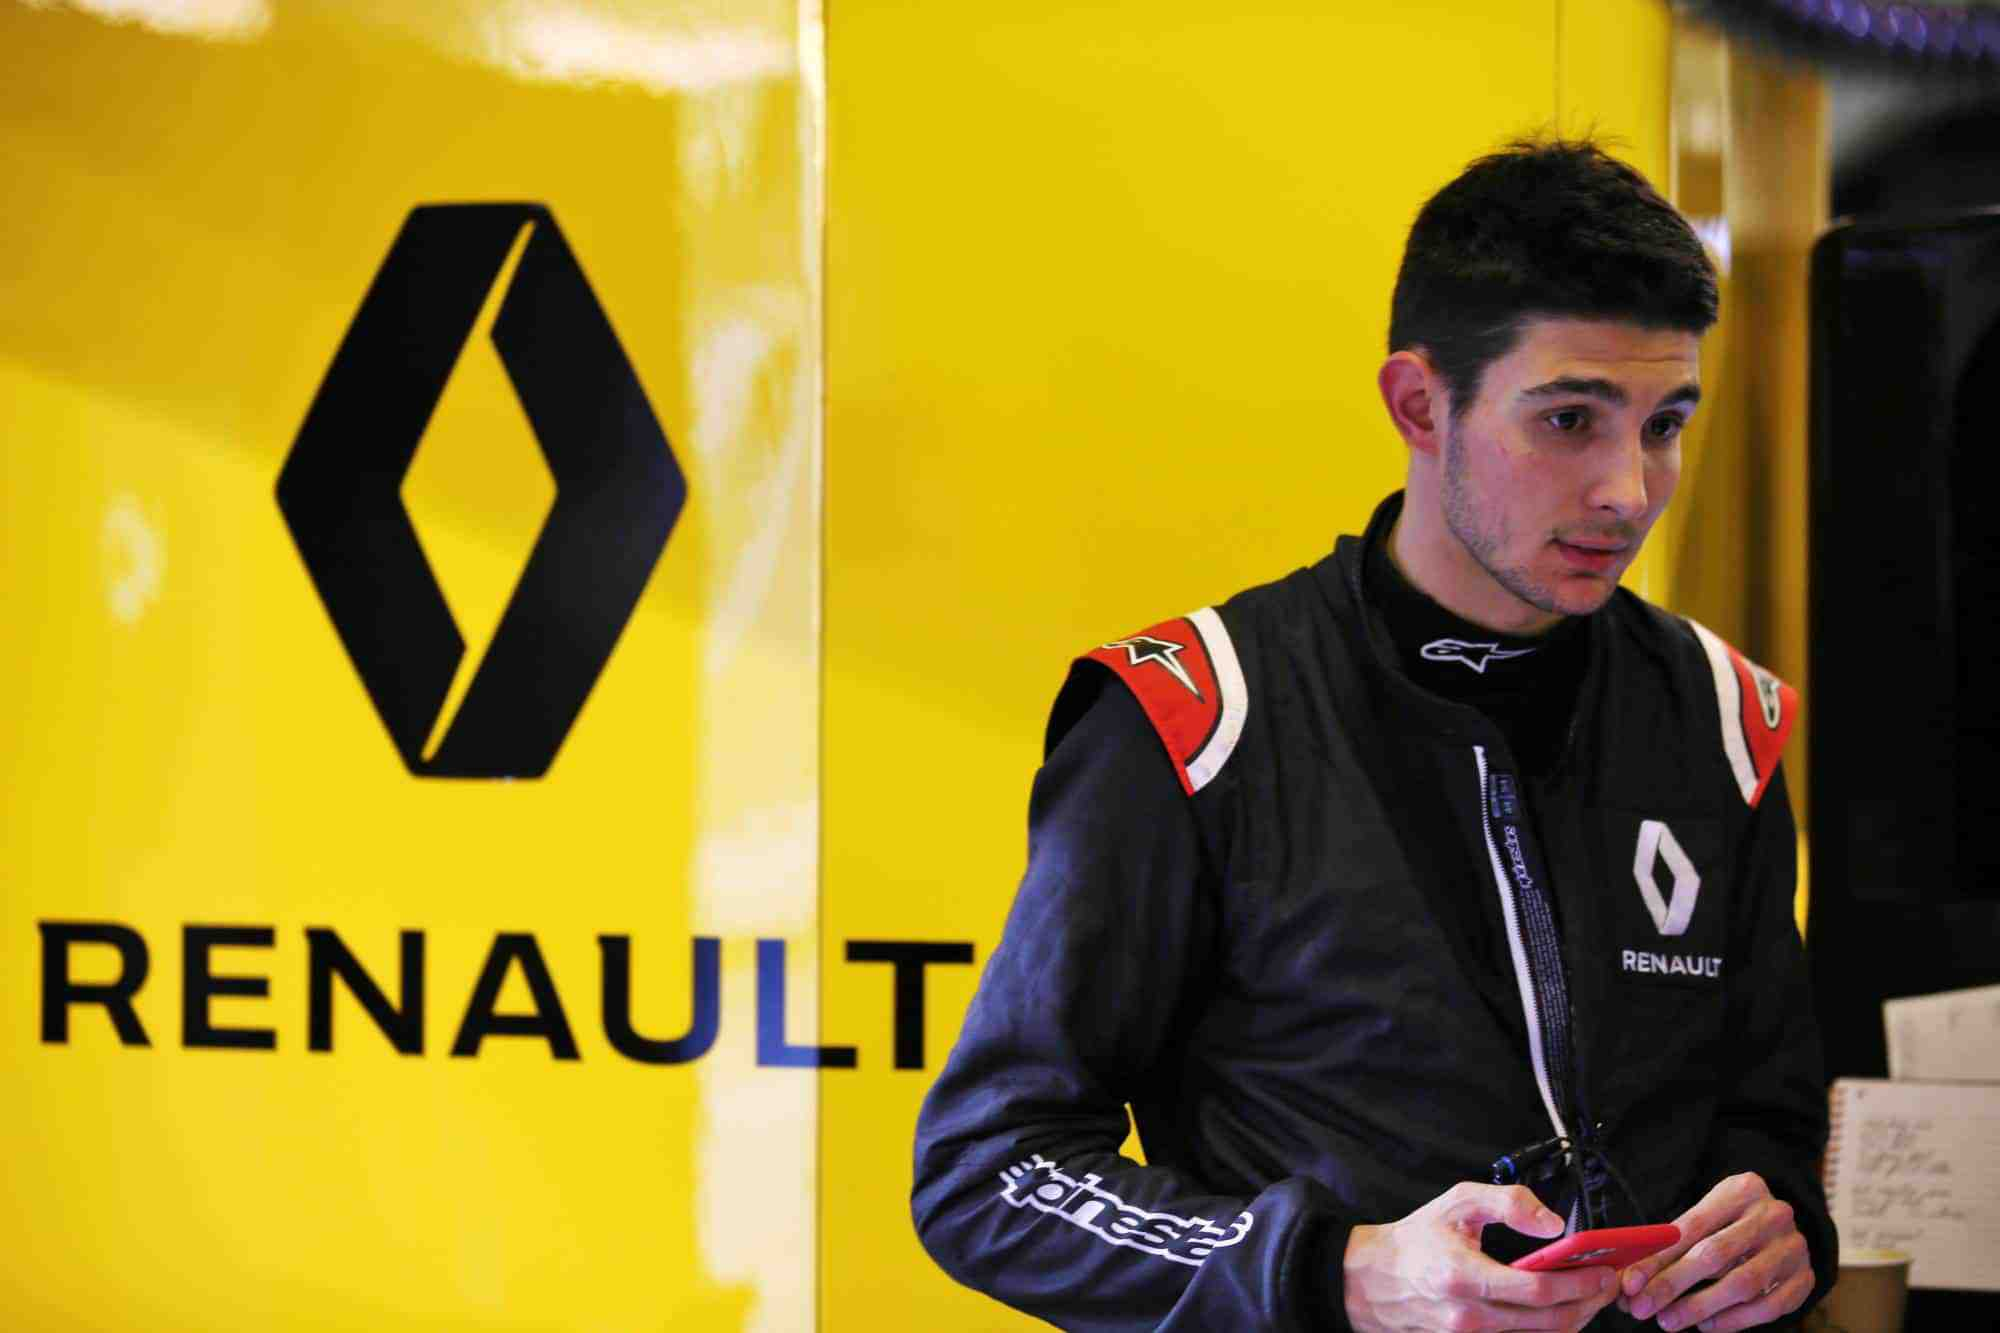 Ocon Renault F1 2019 post season Abu Dhabi test in garage Photo Renault